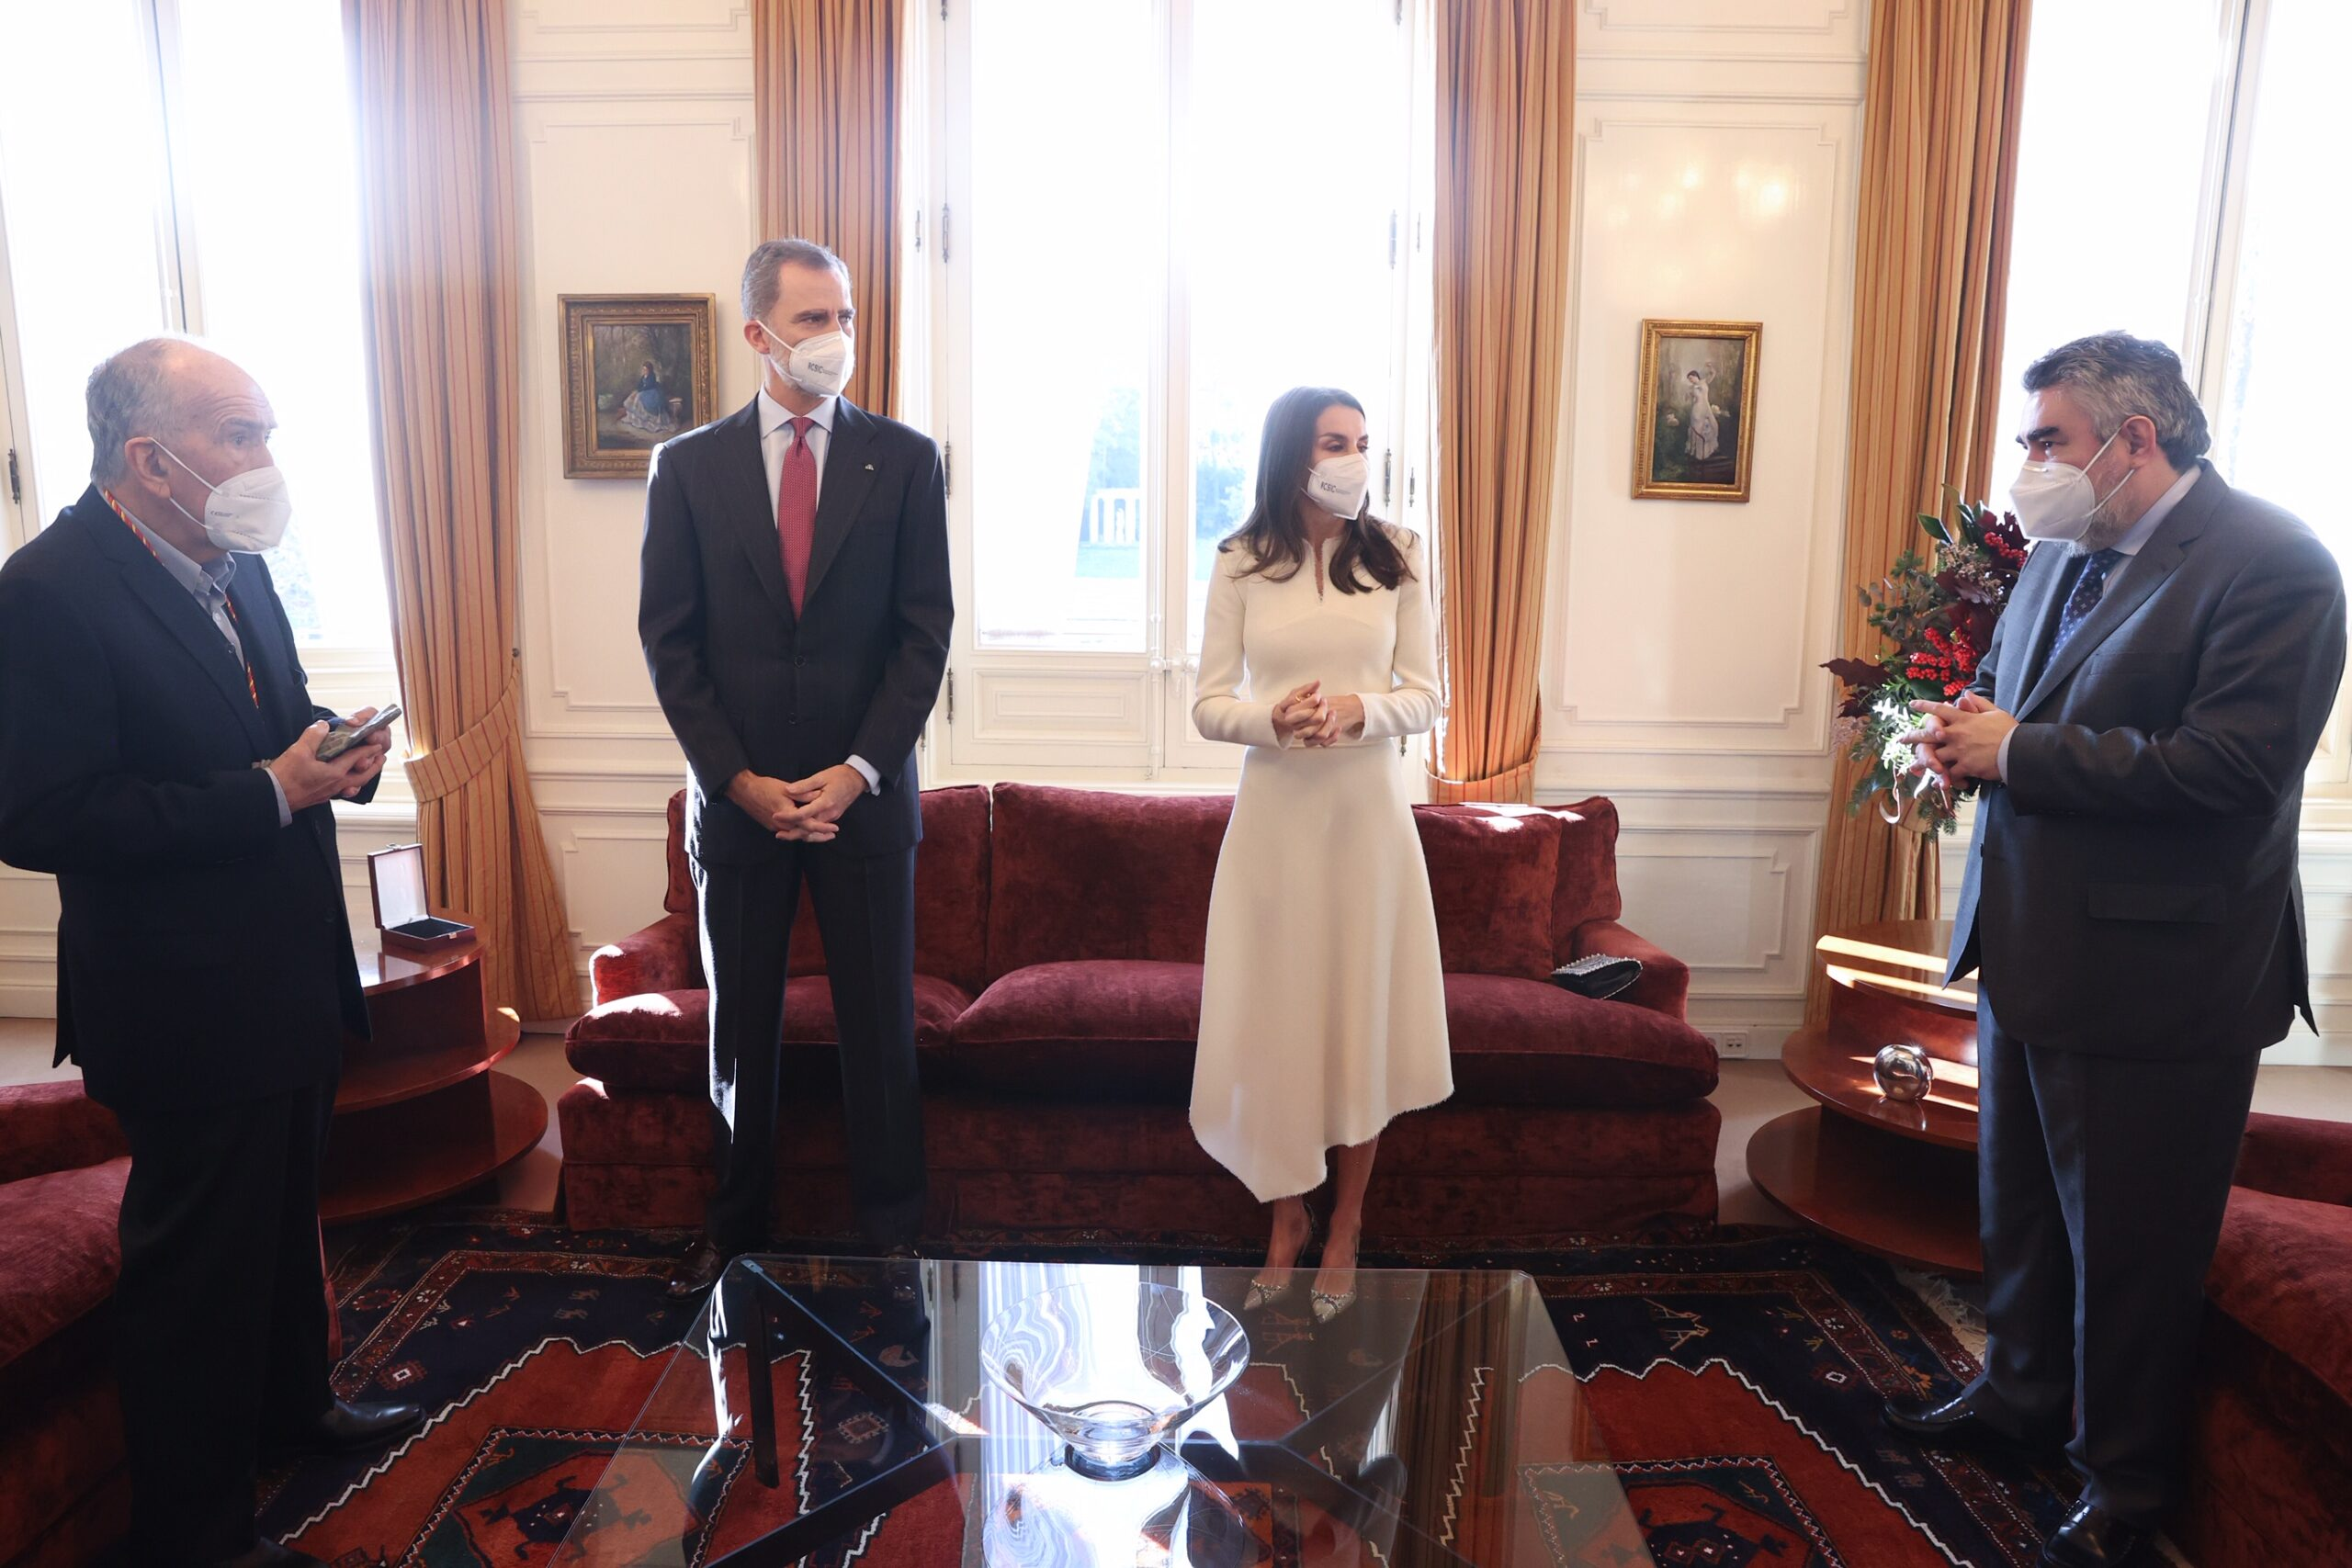 Queen Letizia undertook last engagement of the year 2020 before Christmas and New year holiday